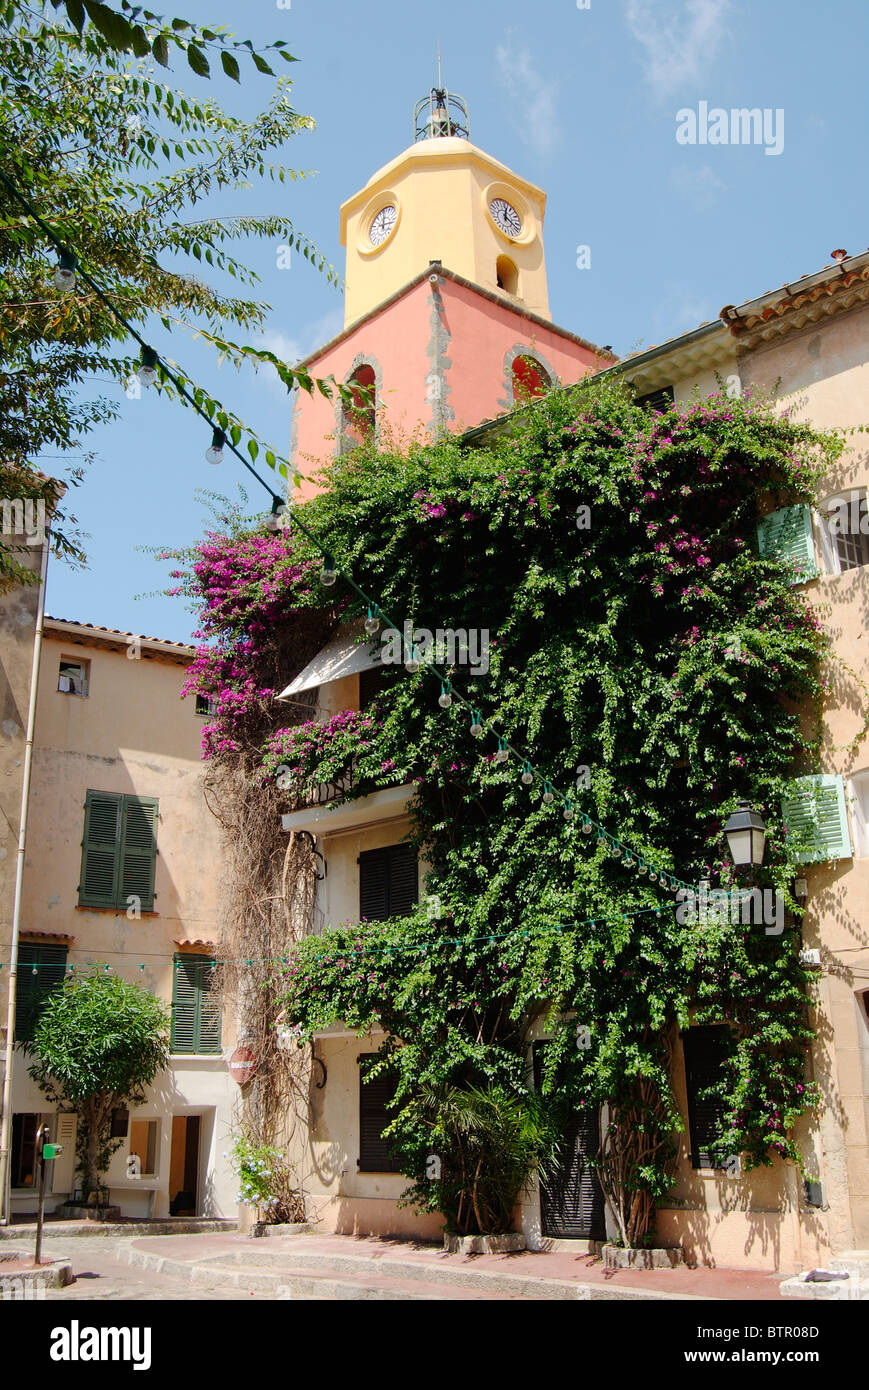 France, Saint-Tropez, View of creeper growing outside clock tower - Stock Image